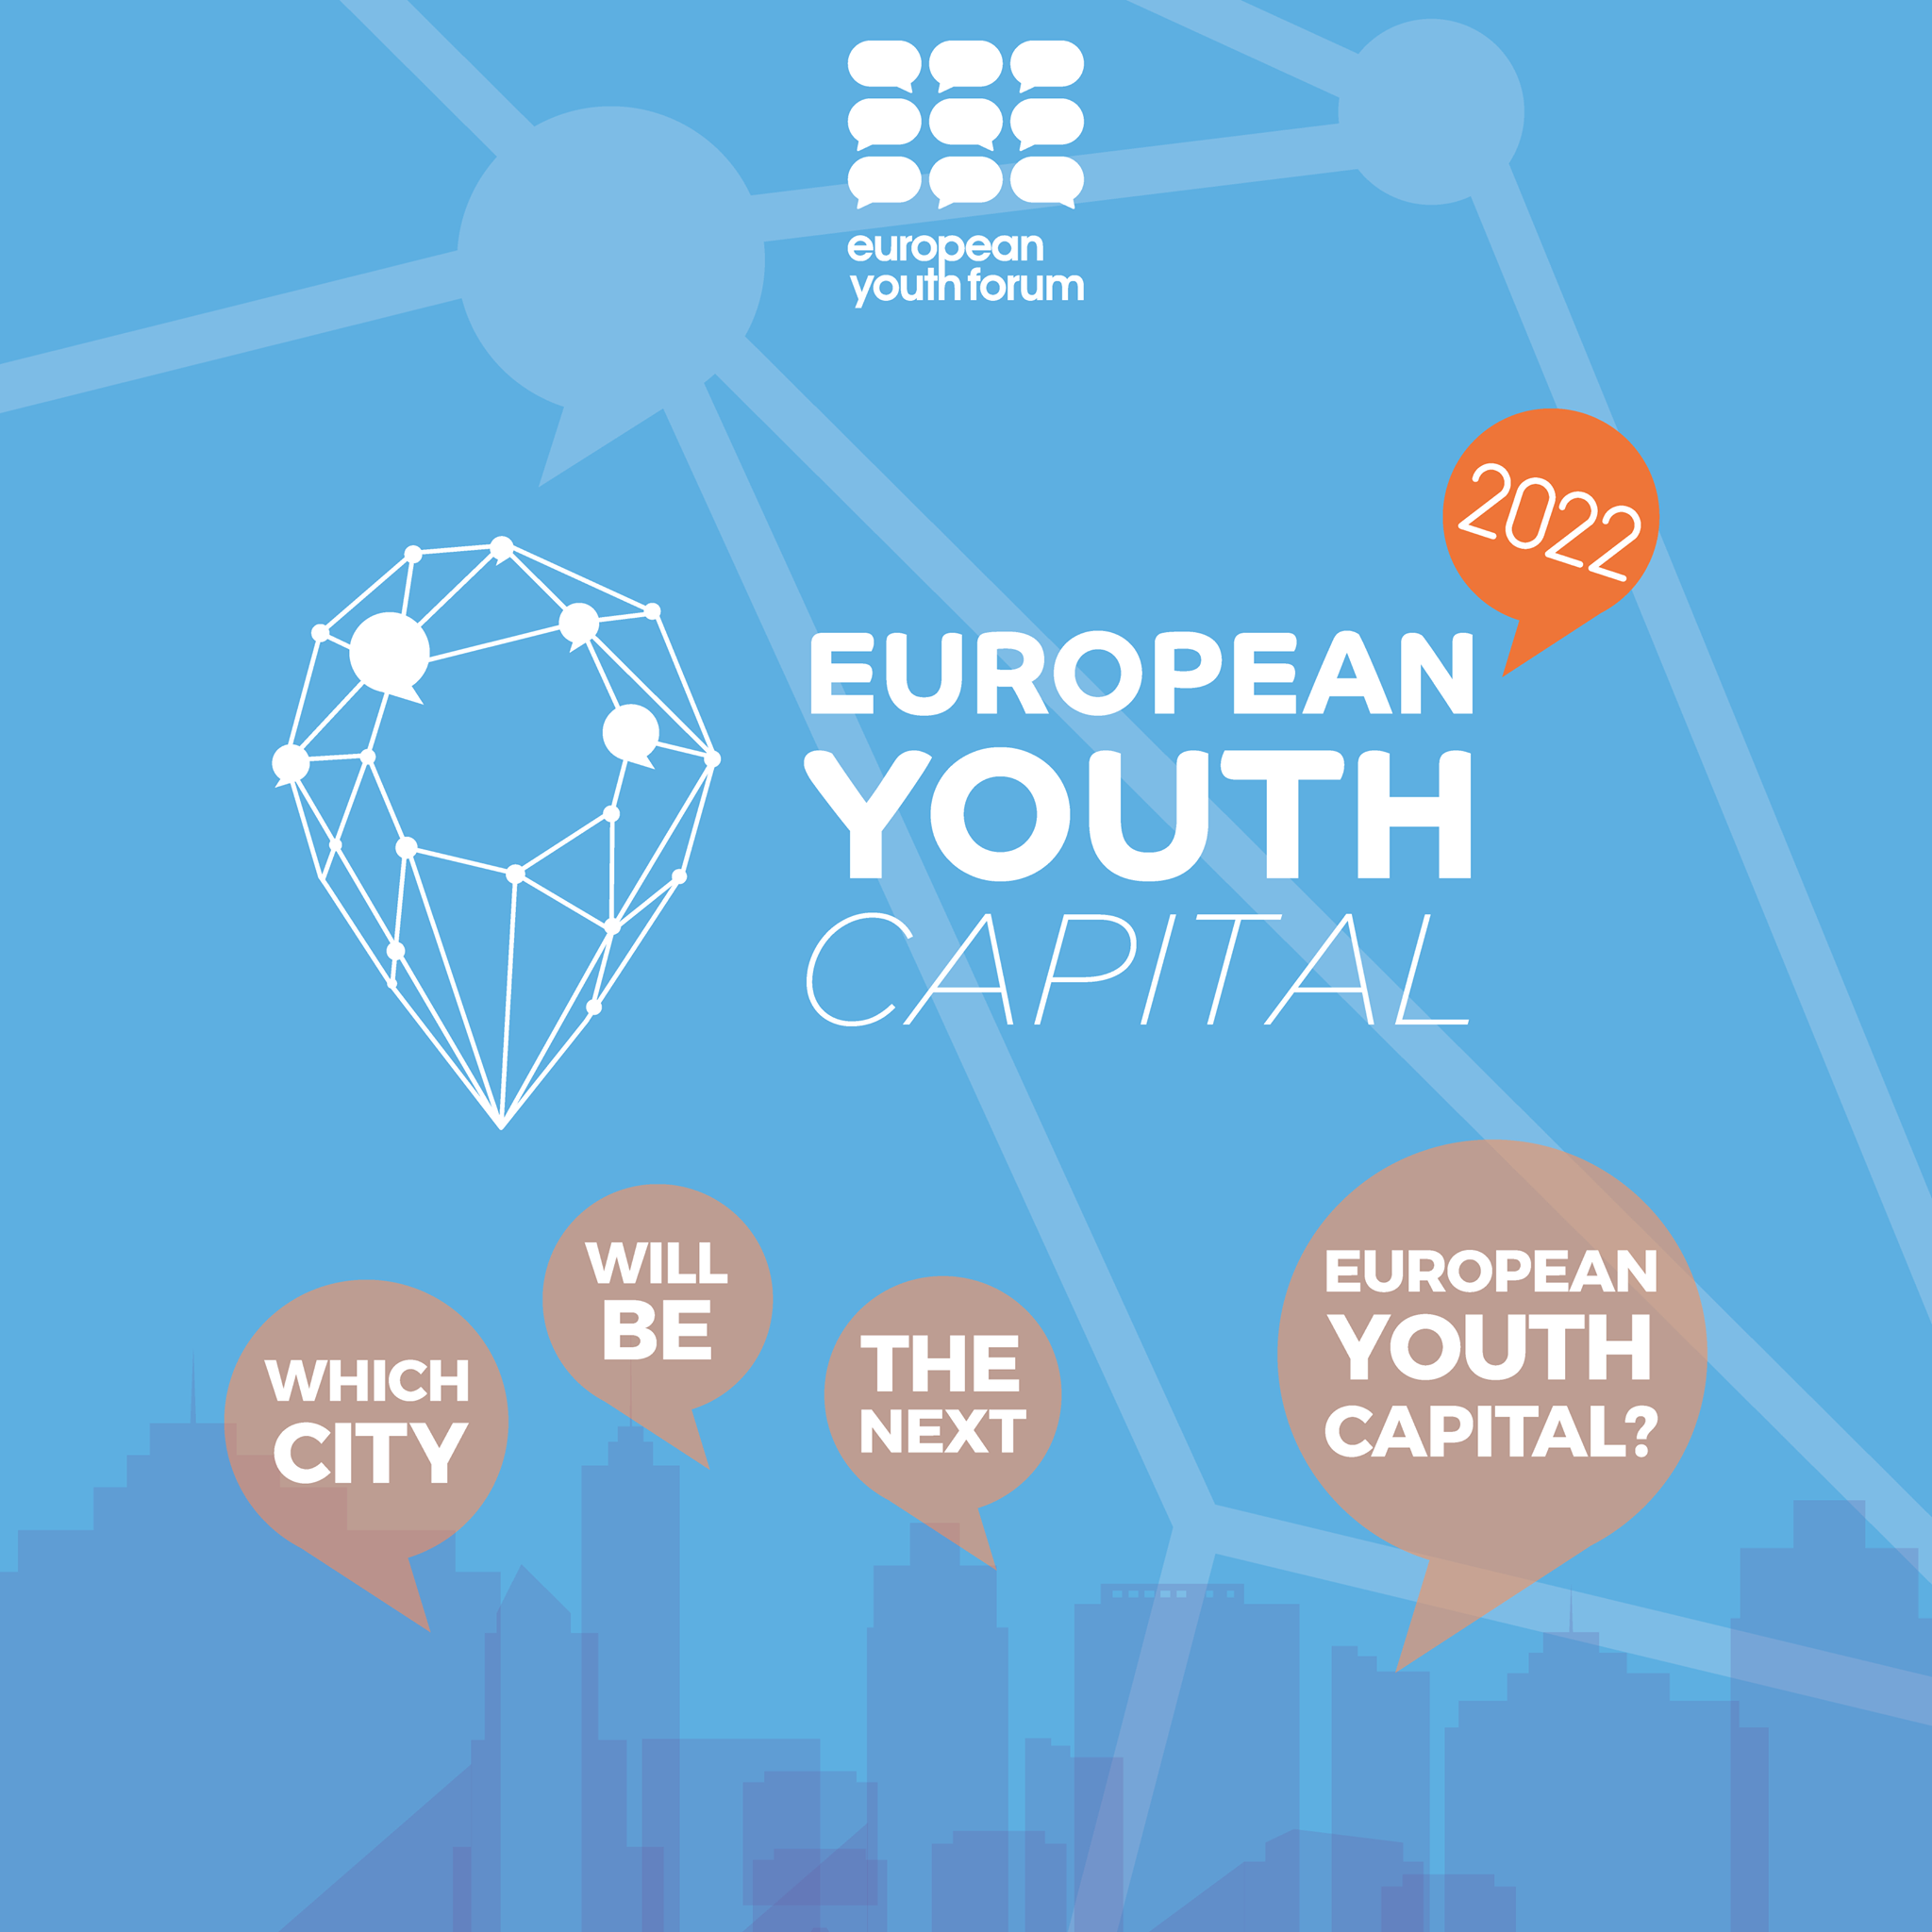 The call for the European Youth Capital 2022 competition is open